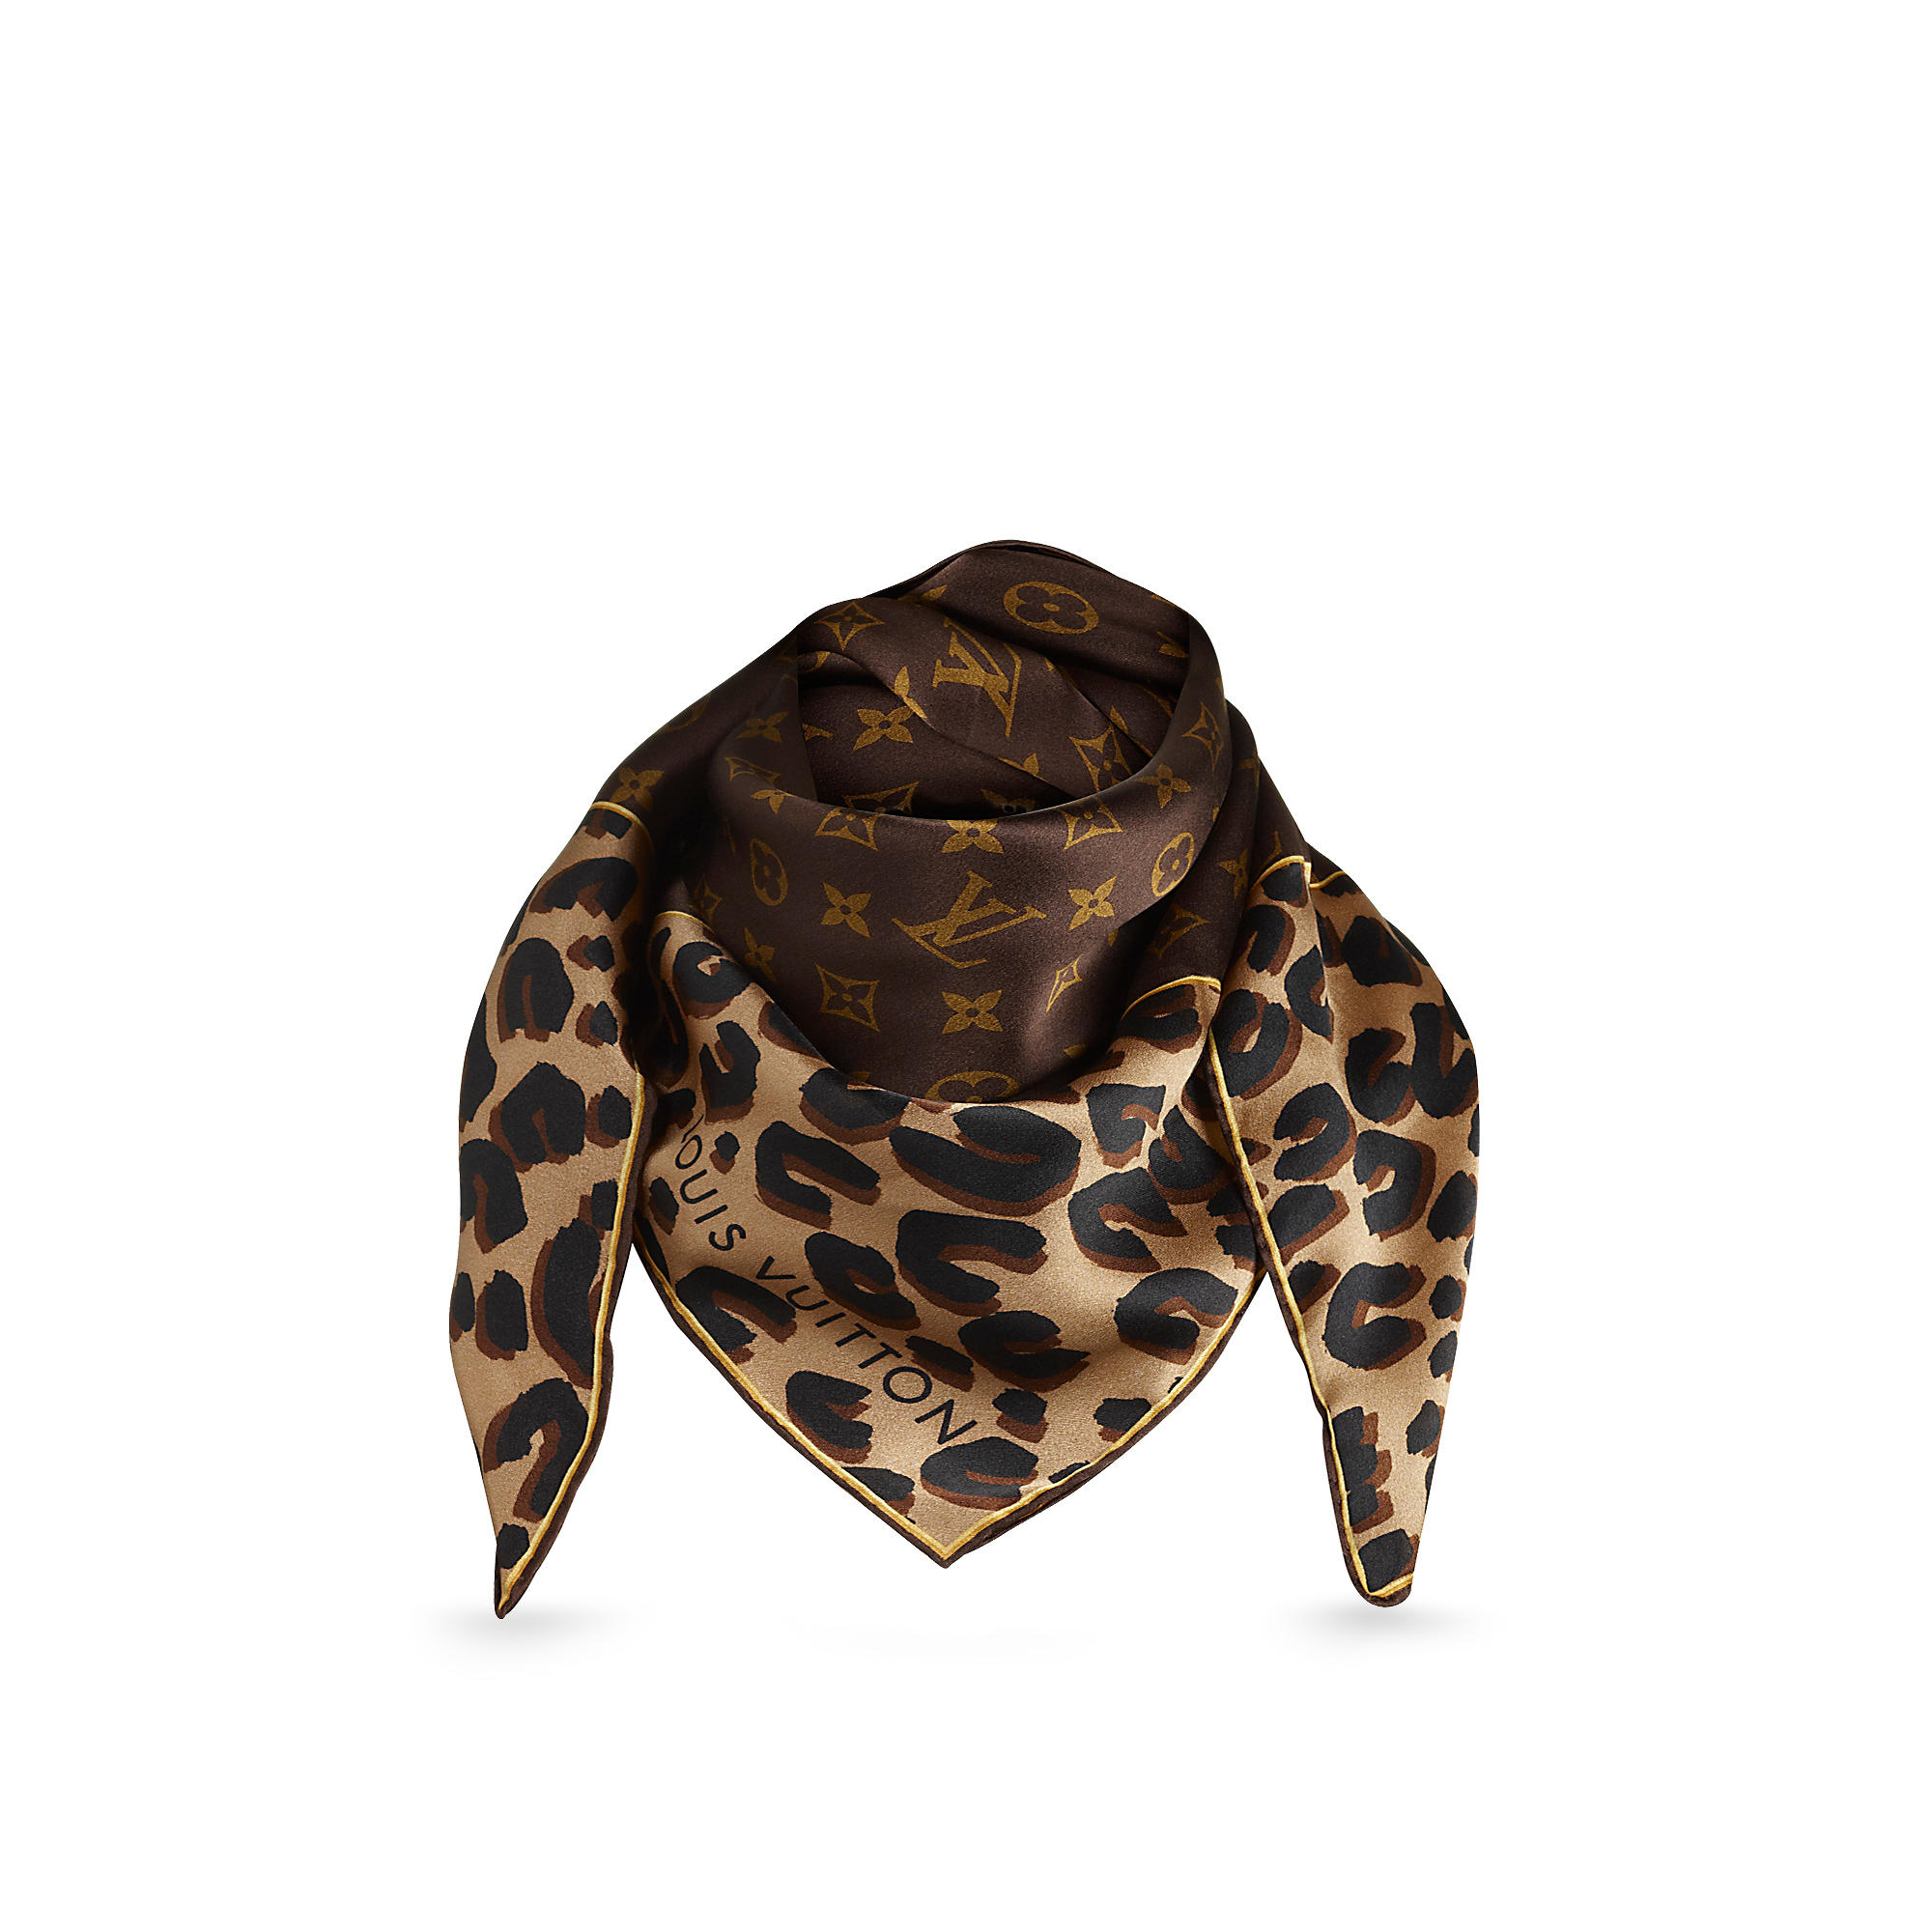 Louis Vuitton M72124 Foulard Leopard & Monogram